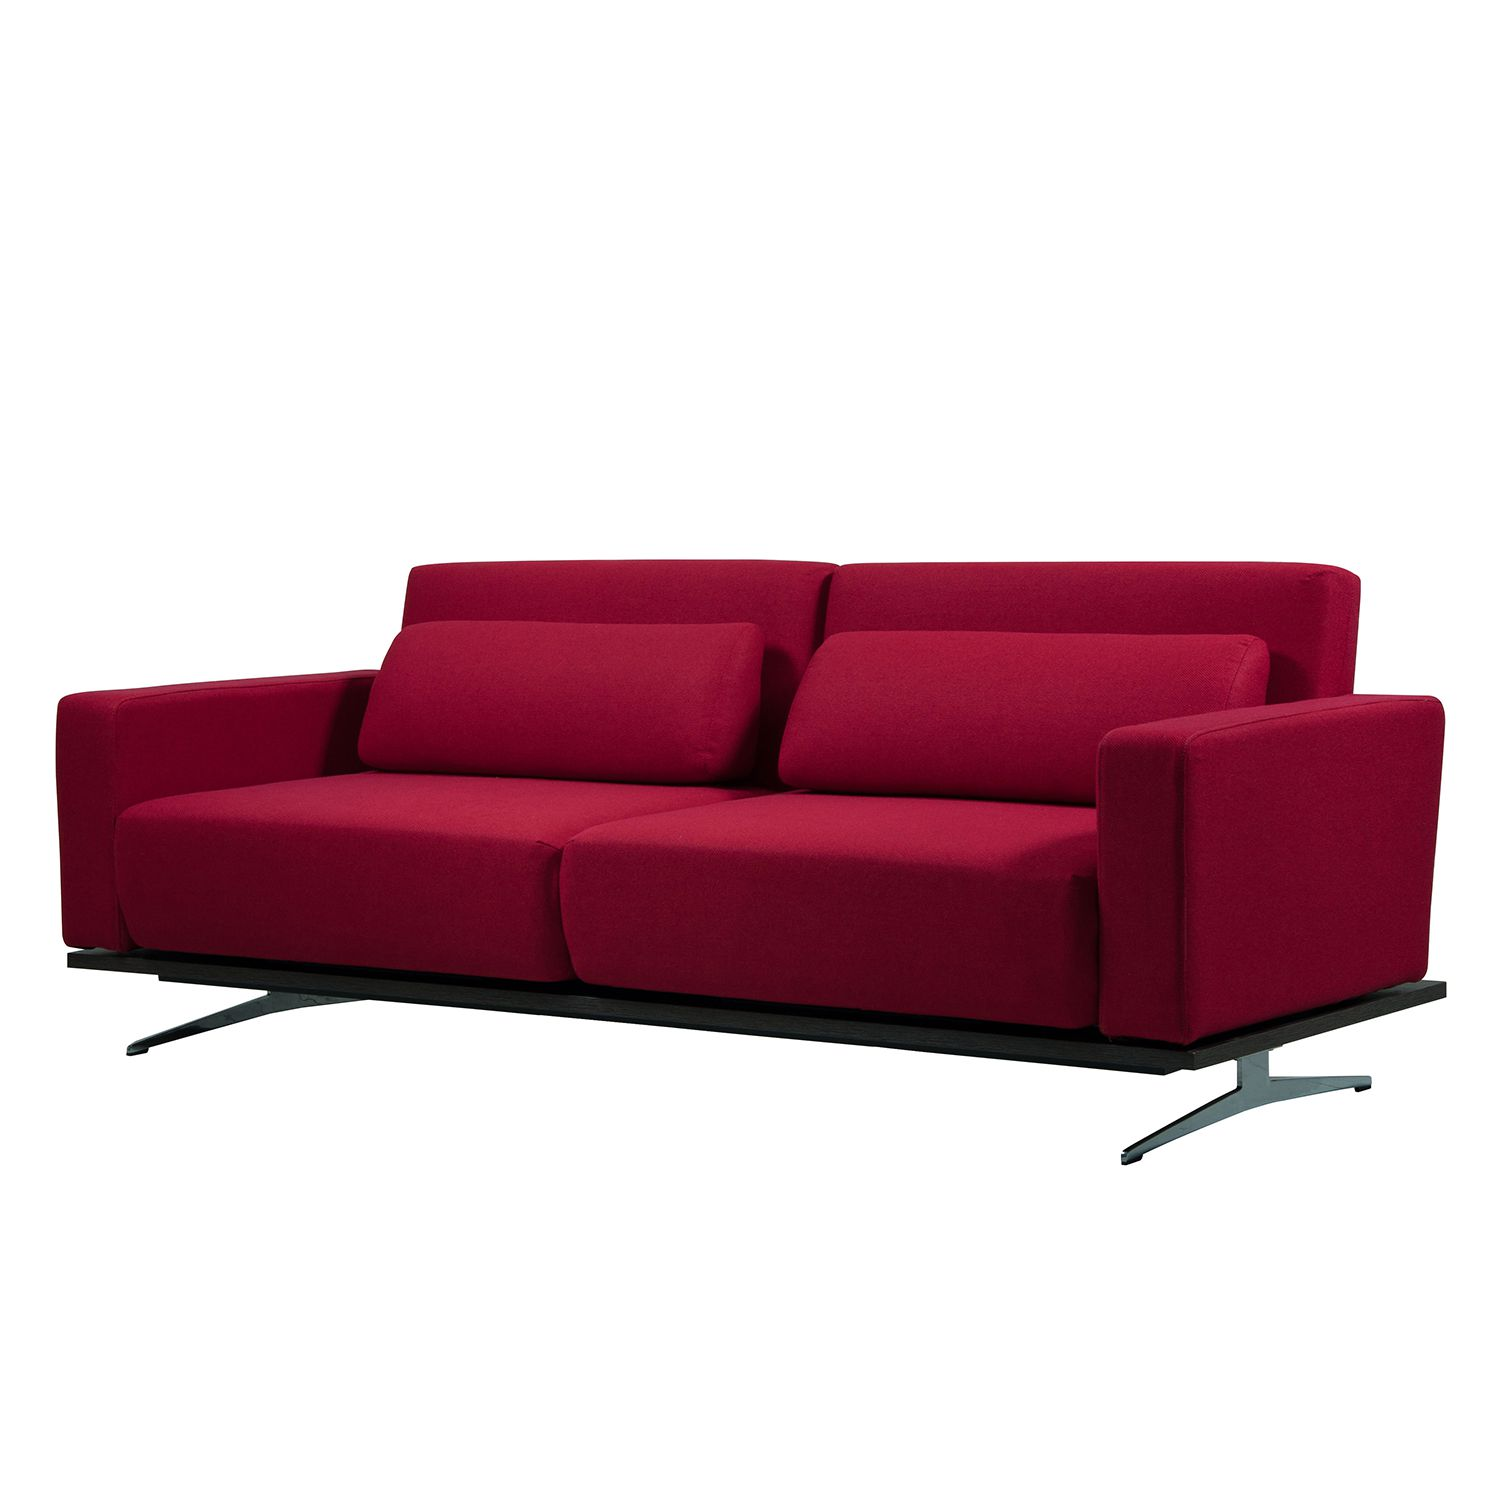 Schlafsofa Copperfield I - Webstoff - Stoff Bora Rot